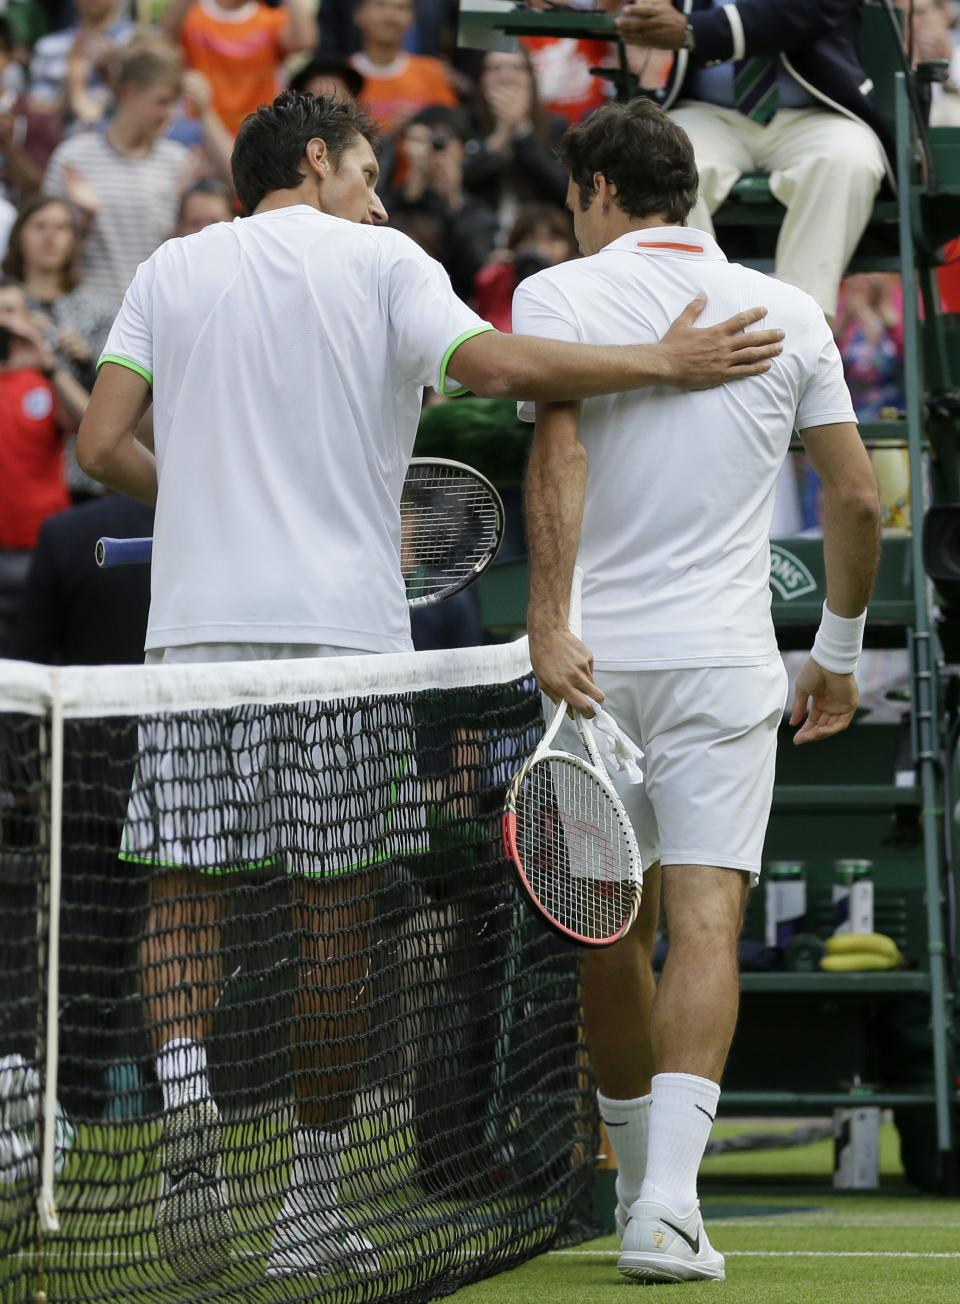 Sergiy Stakhovsky of Ukraine, left, speaks with Roger Federer of Switzerland after he defeated him in their Men's second round singles match at the All England Lawn Tennis Championships in Wimbledon, London, Wednesday, June 26, 2013. (AP Photo/Alastair Grant)